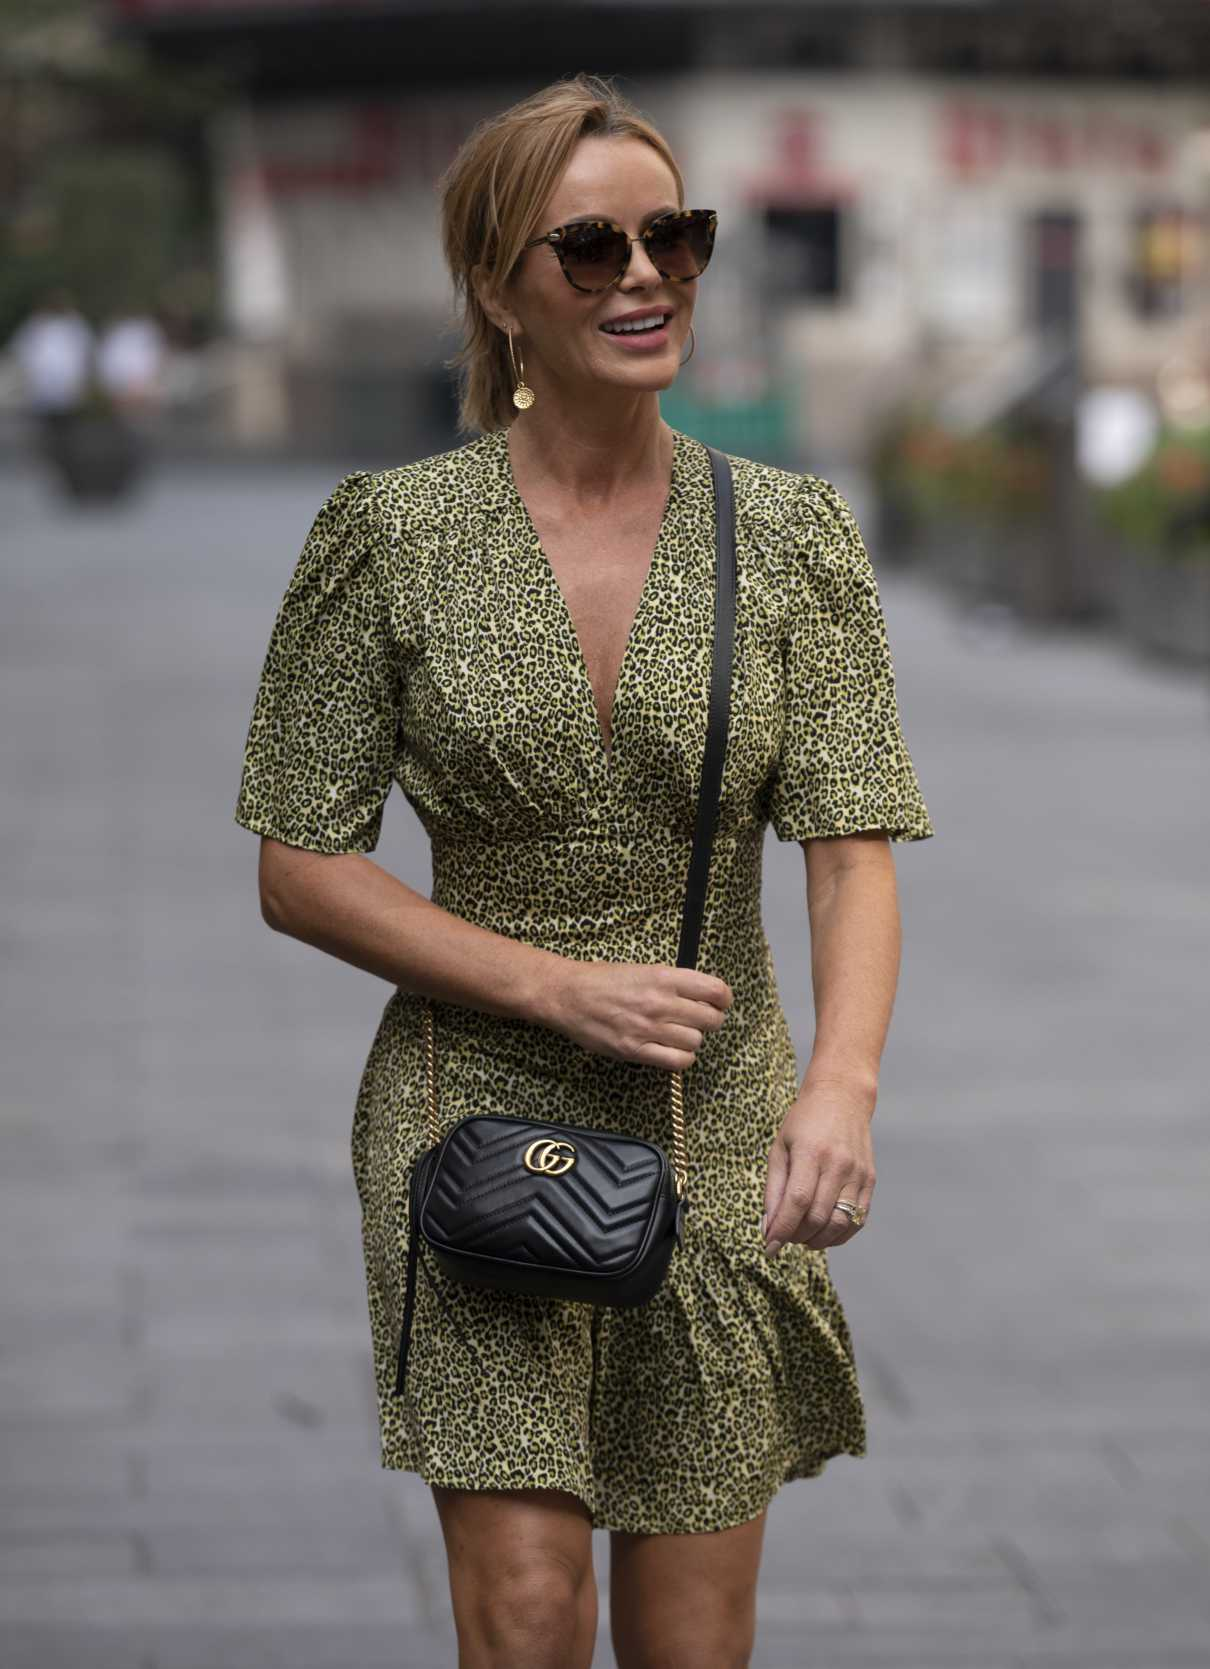 Amanda Holden in an Olive Animal Print Dress